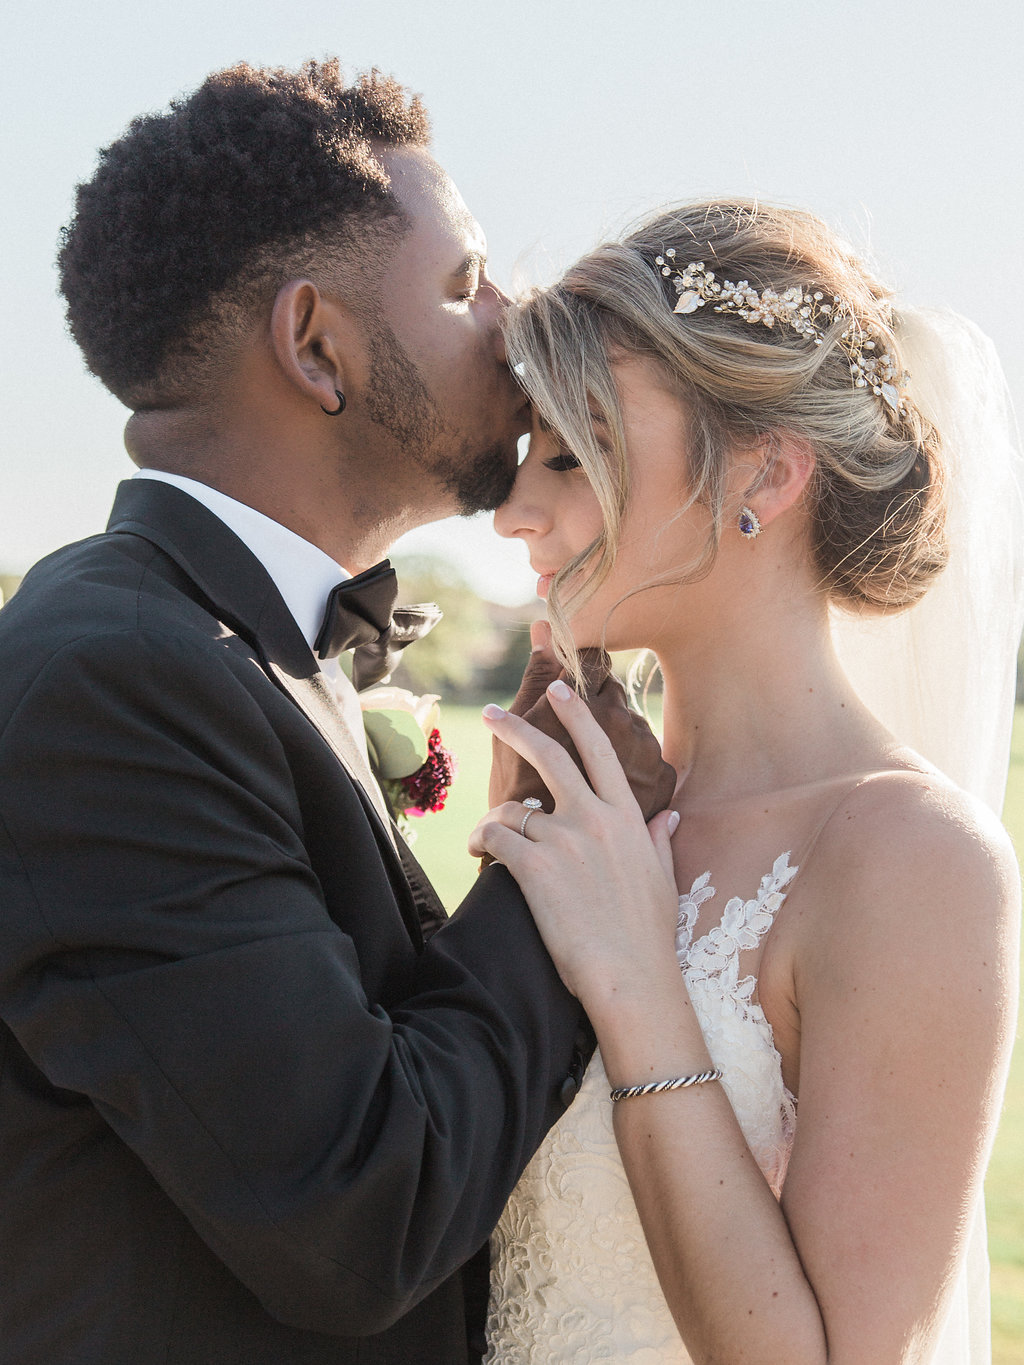 Intimate Outdoor Wedding Portrait, Bride in Spaghetti Strap Lace Dress, Curled Hair Updo with Floral Headpiece and Tulle Veil, Groom in Black Tuxedo with White Rose and Red Flower Boutonniere   Tampa Bay Wedding Hair and Makeup Artist LDM Beauty Group